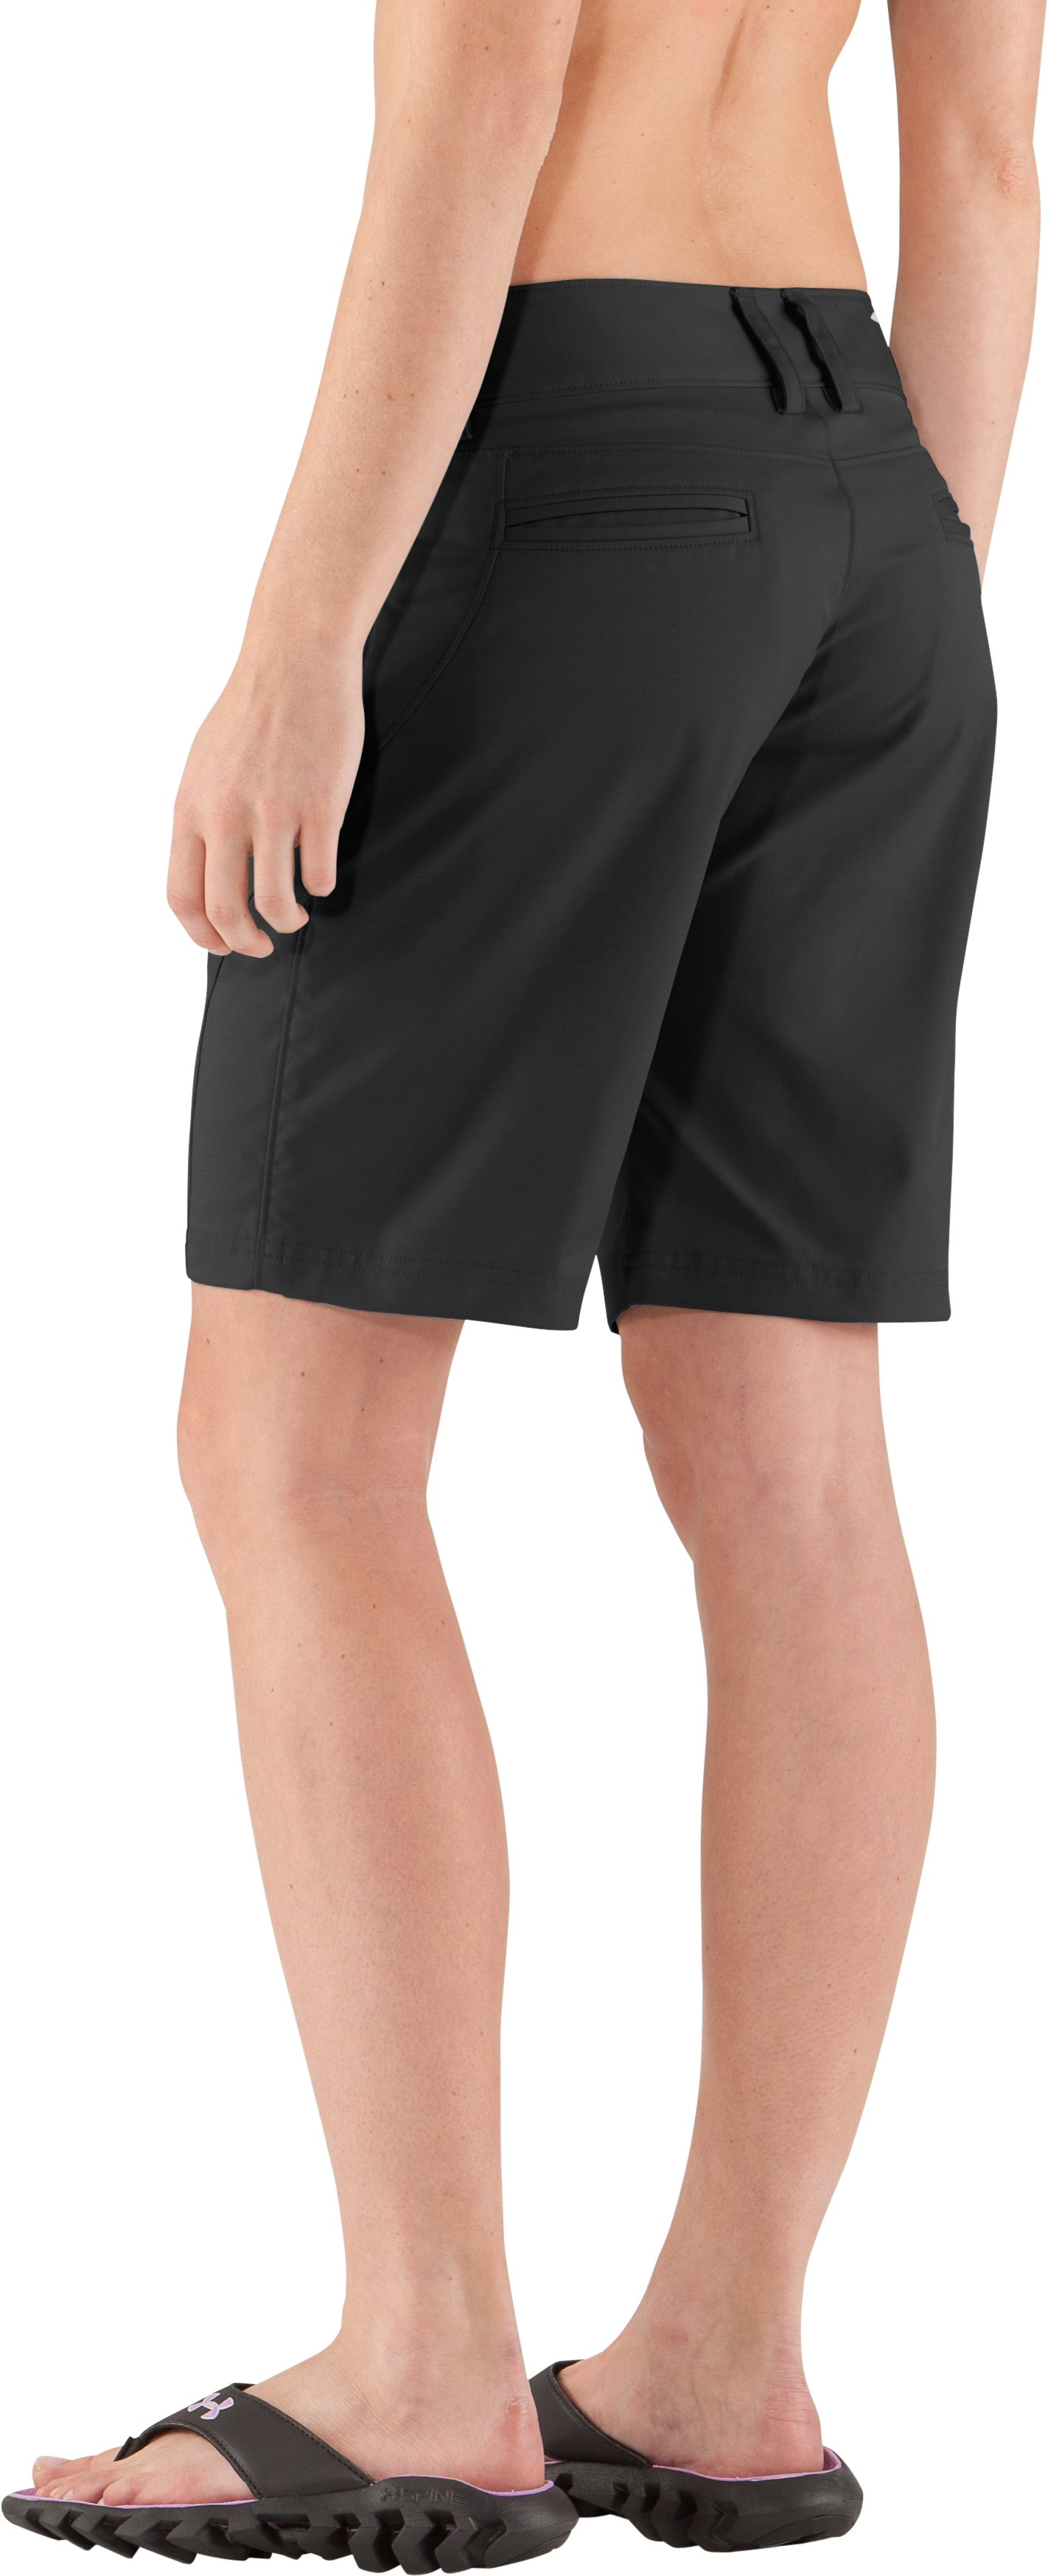 Women's UA Tellervo Walking Shorts, Black